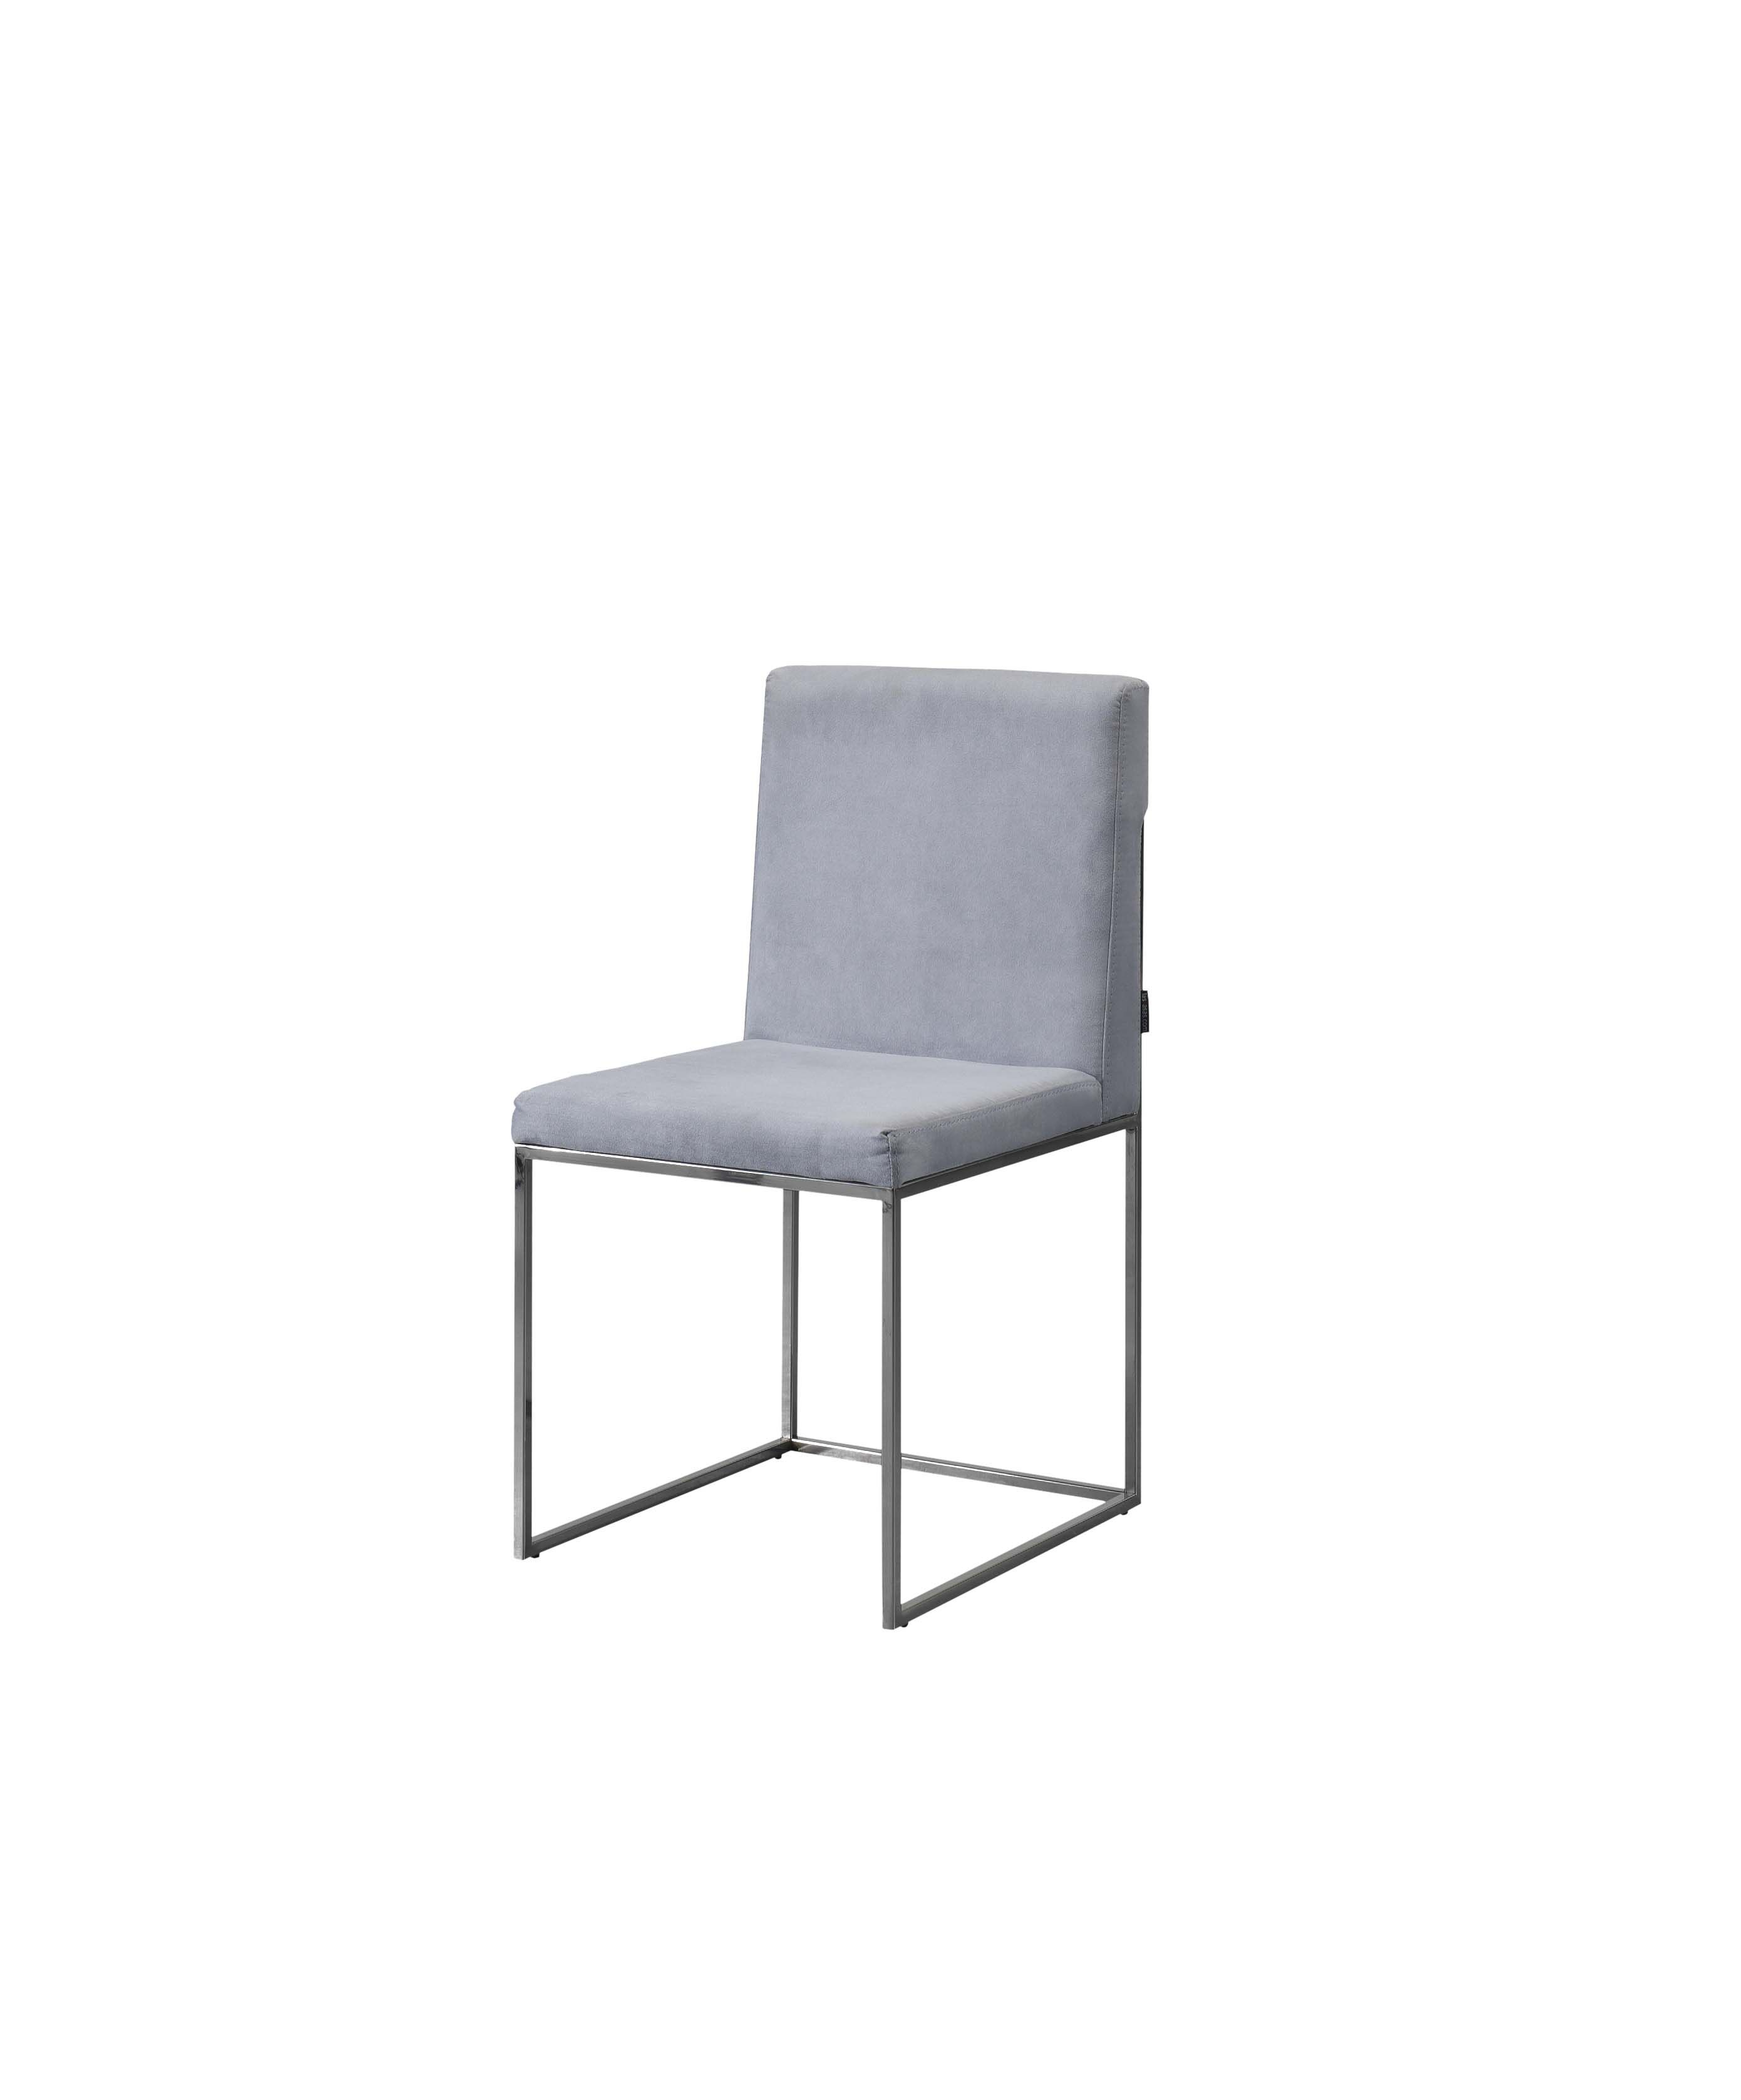 Laskasas | Peter Dining Chair | Light Blue Upholstered Chair With Stainless  Steel Legs. Www